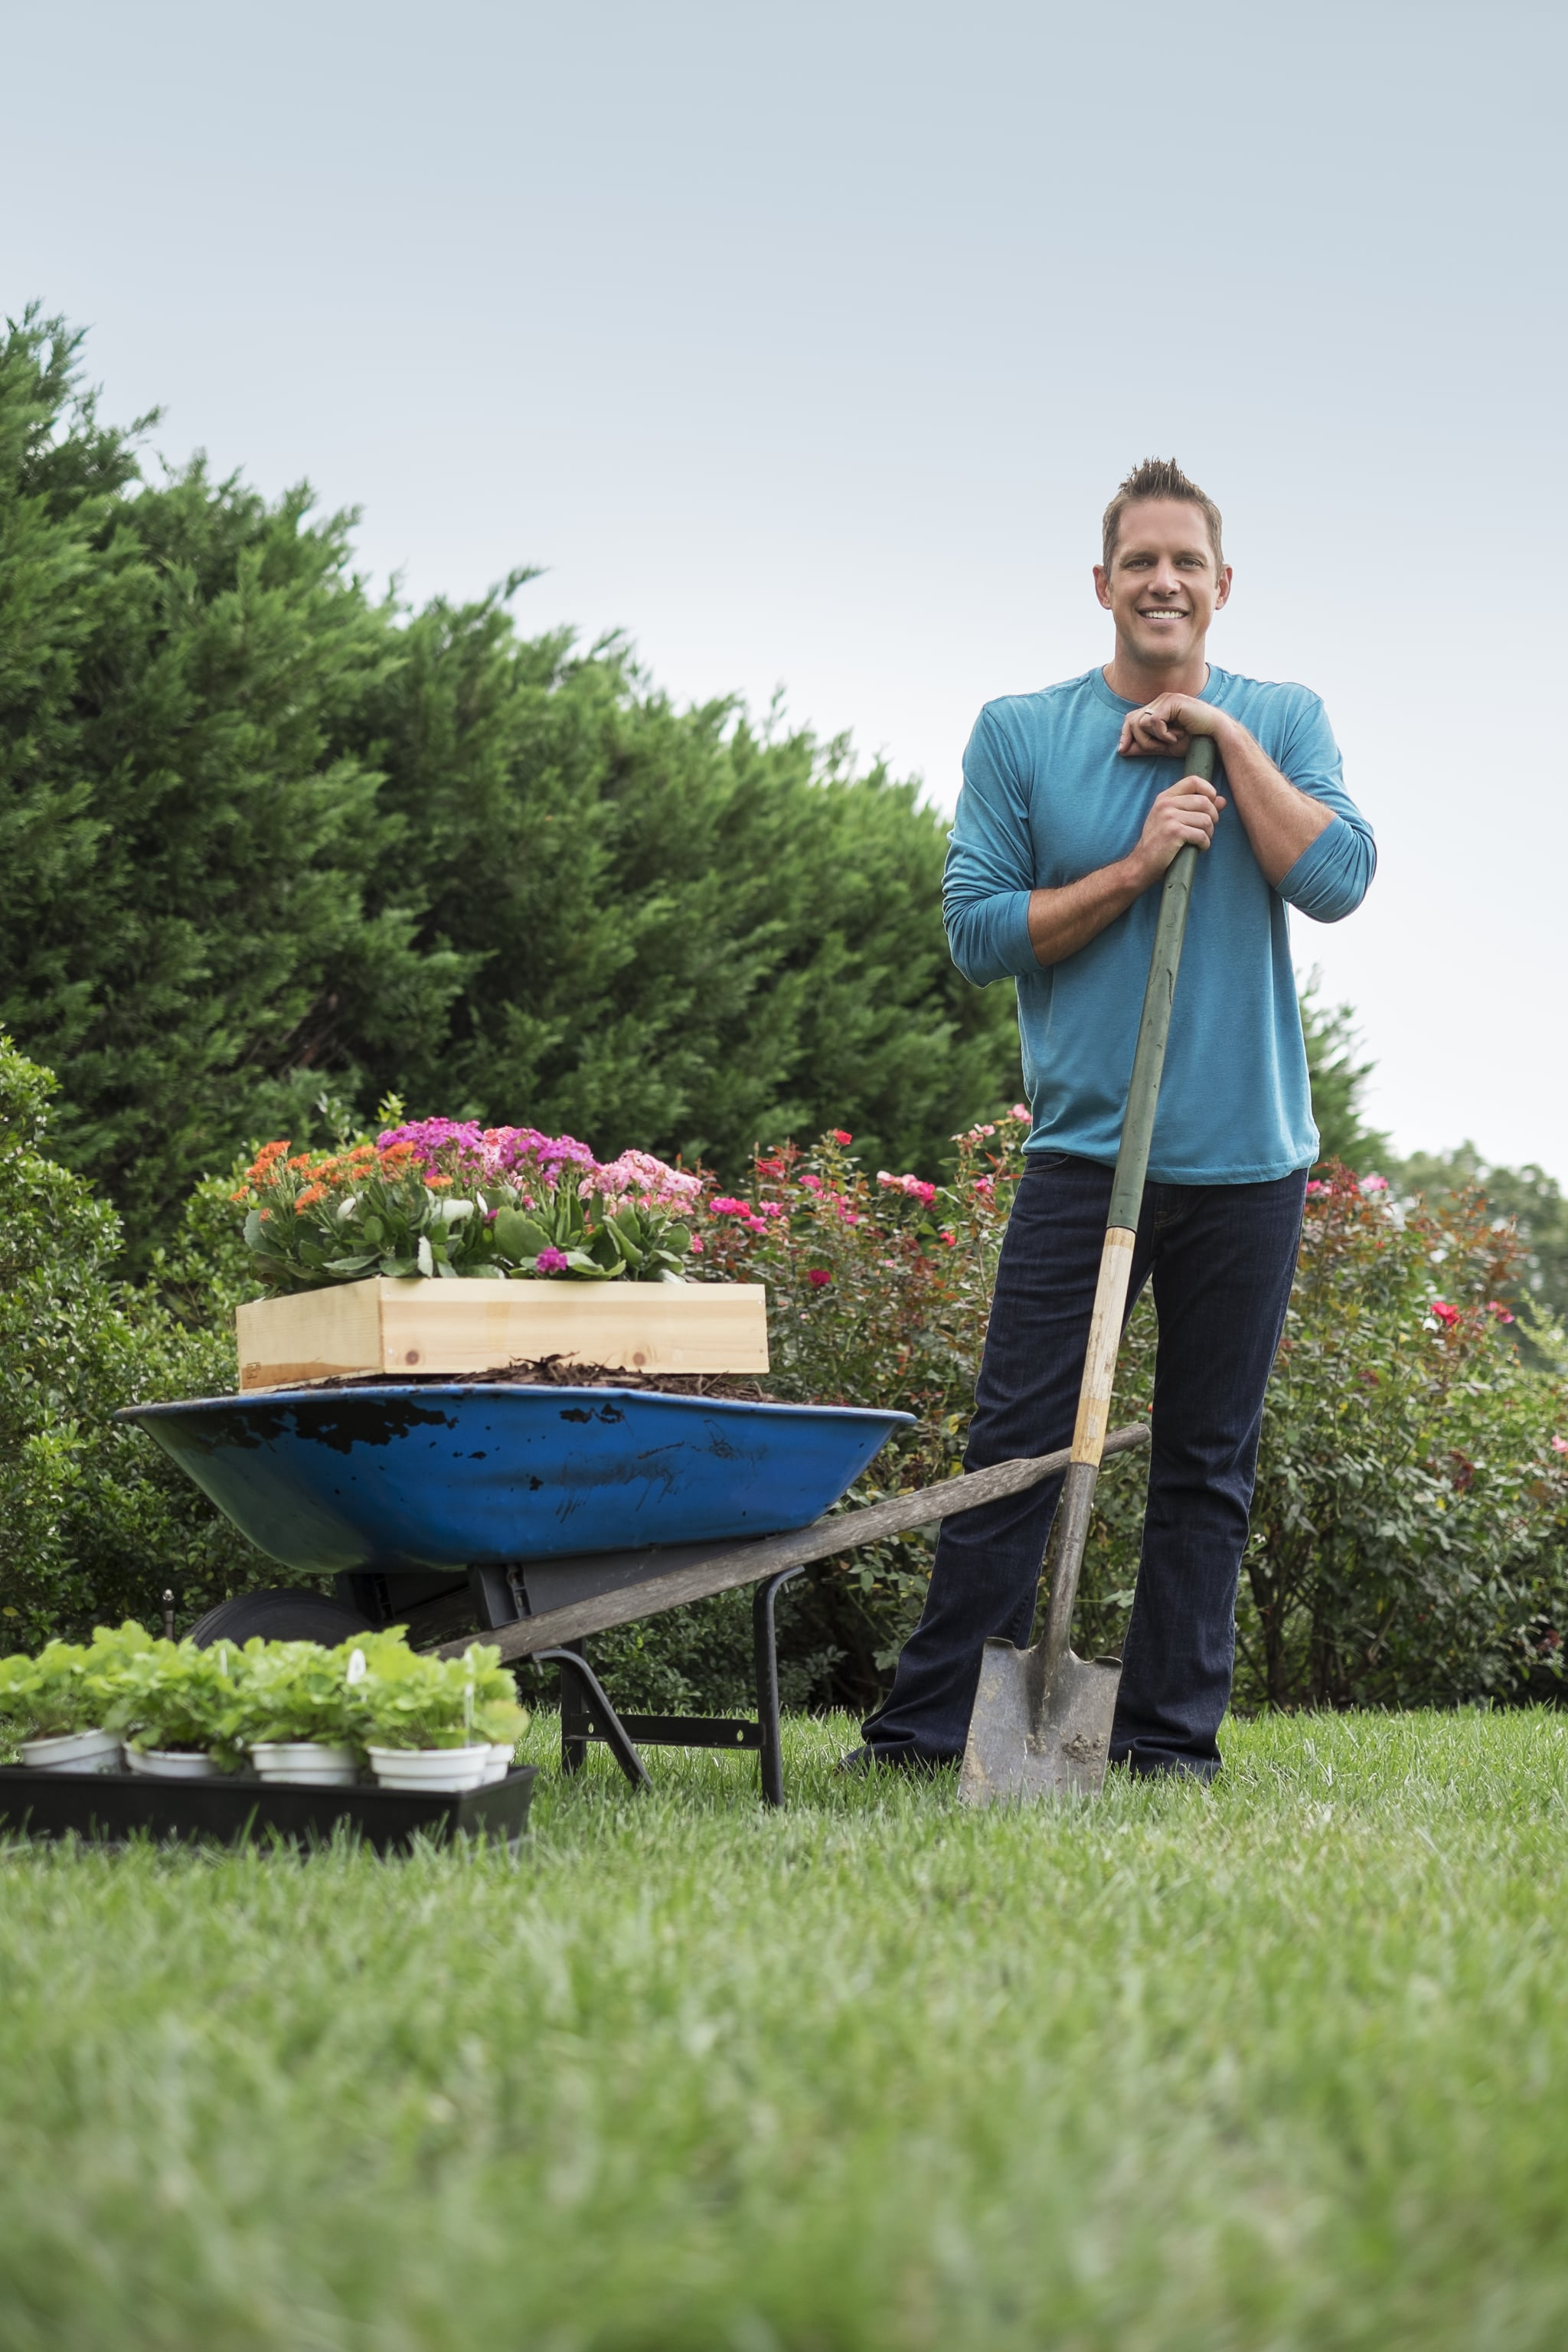 how to get cast on yard crashers popsugar home